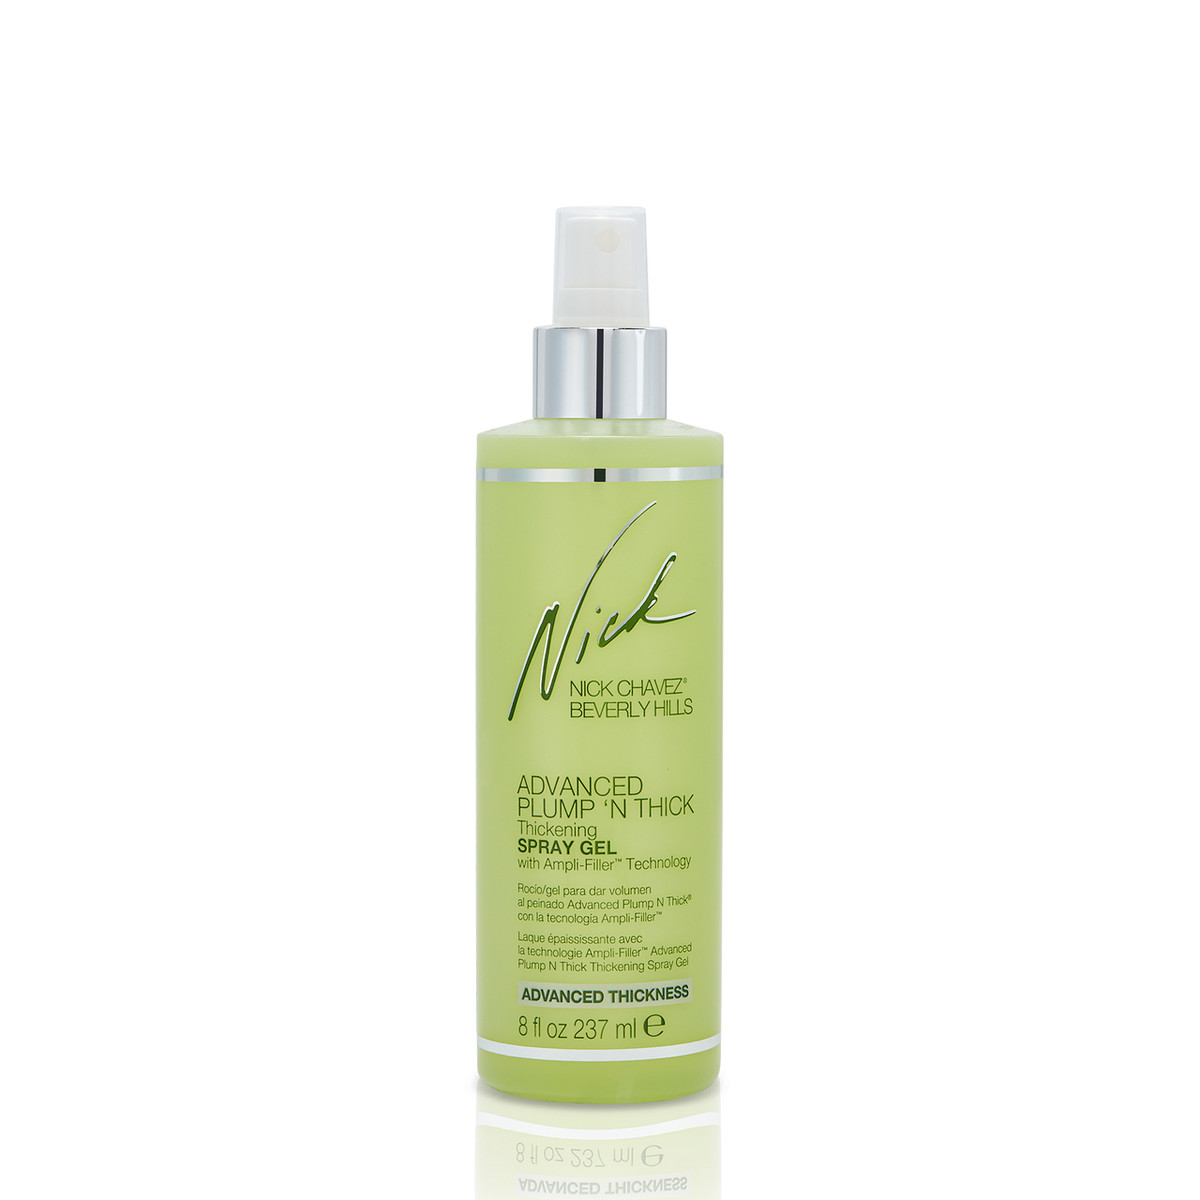 Advanced Plump 'N Thick Thickening Spray Gel